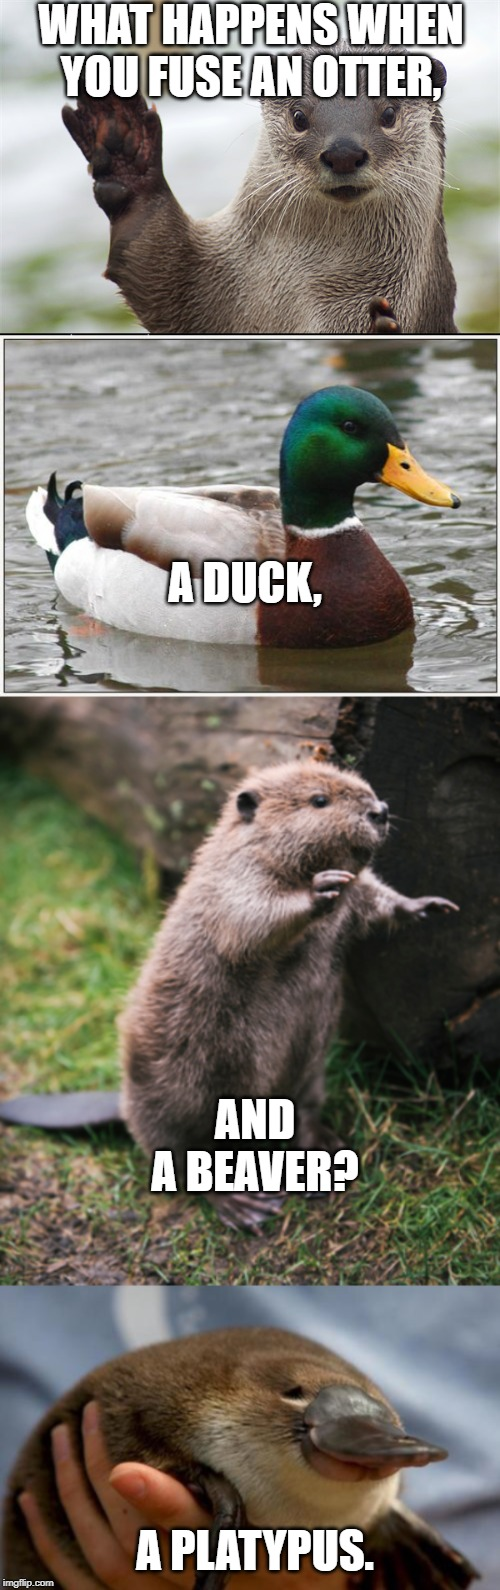 Thanks, god. | WHAT HAPPENS WHEN YOU FUSE AN OTTER, A DUCK, AND A BEAVER? A PLATYPUS. | image tagged in memes,actual advice mallard,beaver,welcome back otter,platypus | made w/ Imgflip meme maker